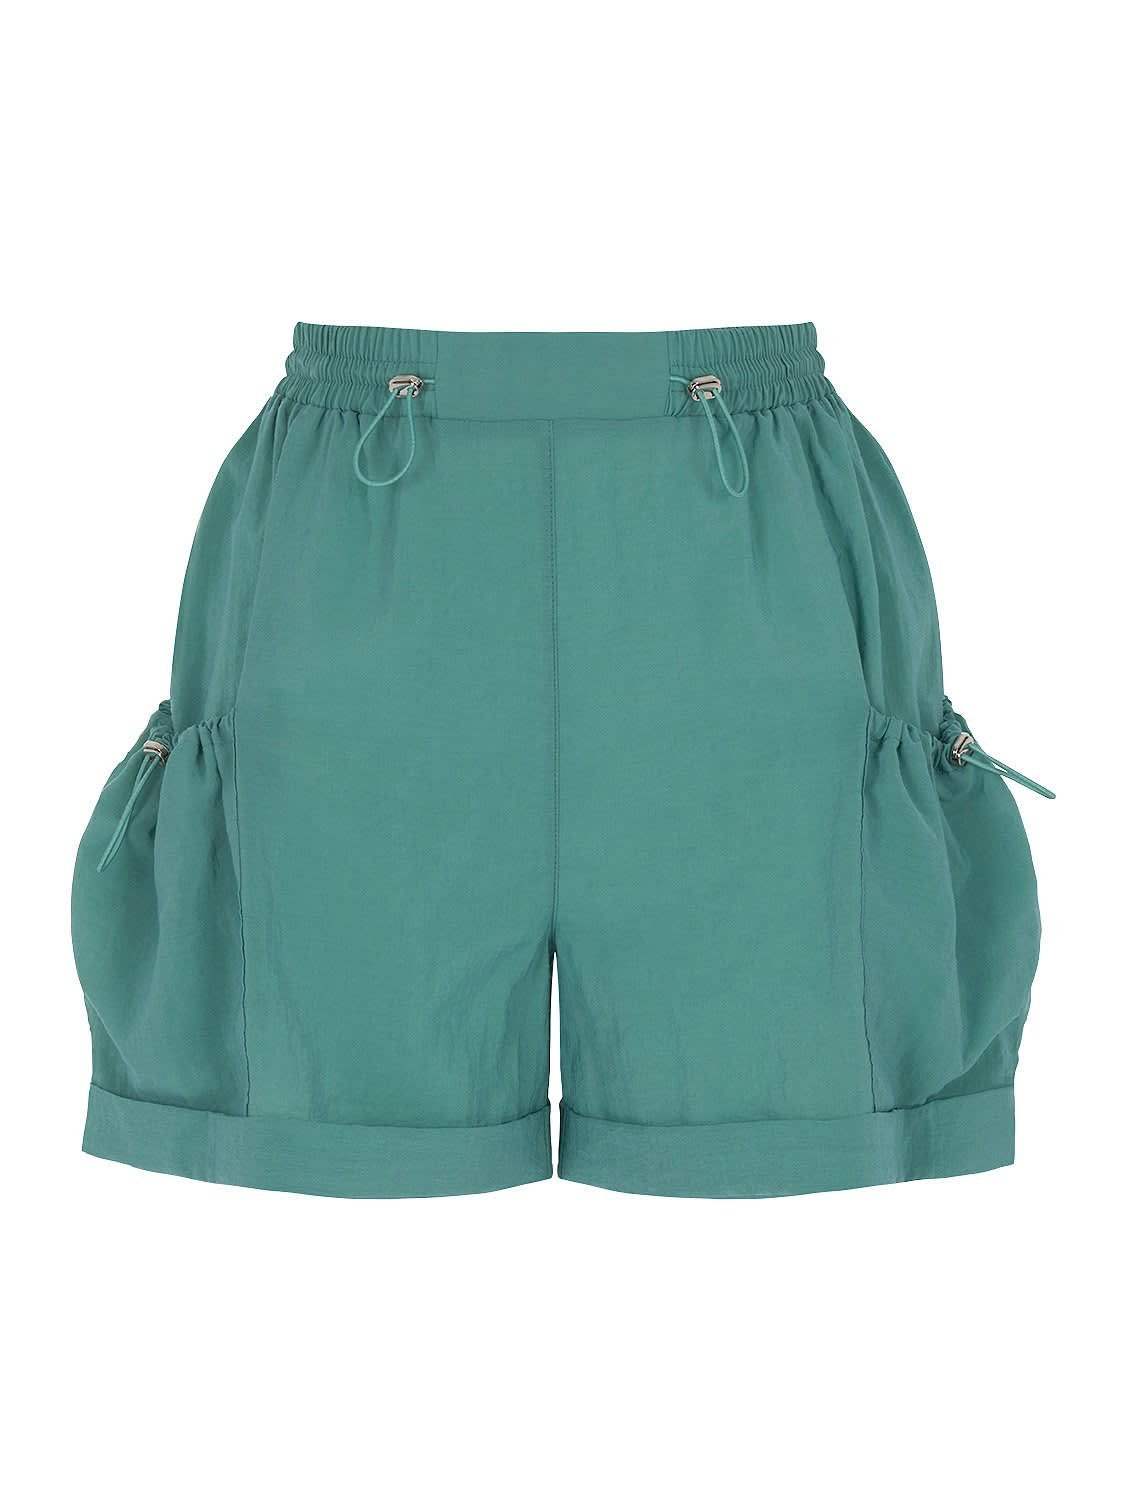 Ruched Mini Shorts with Pockets by Nocturne, available on shopnocturne.com for $73 Gigi Hadid Shorts Exact Product